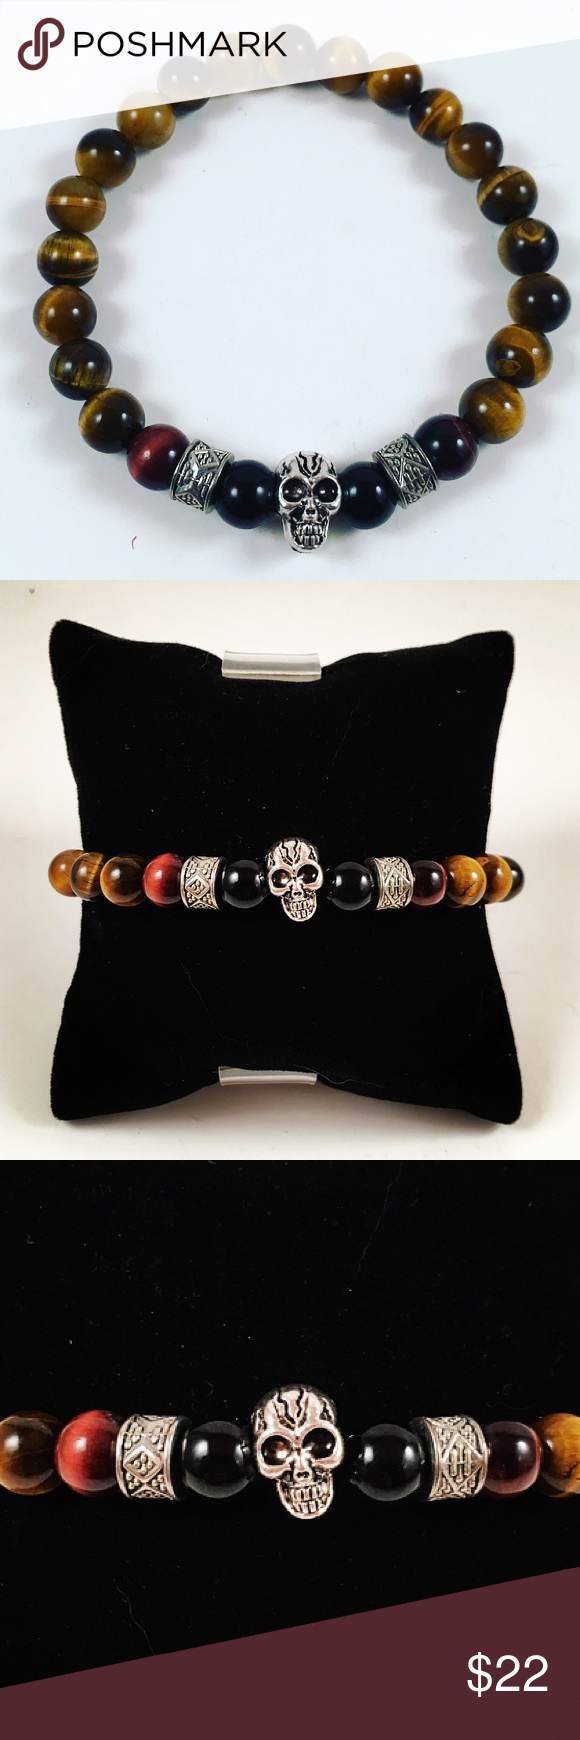 Men tiger eye , onyx, skull beaded bracelet. Men beaded bracelet. Fits most , 7.5 to 8.5 inch wrist. Handmade by me , never worn by anyone. Made with golden and red tiger eye, onyx and tibetan silver skull and deco charms. I ship fast!!✈️ Free gift with every purchase!! Accessories Jewelry